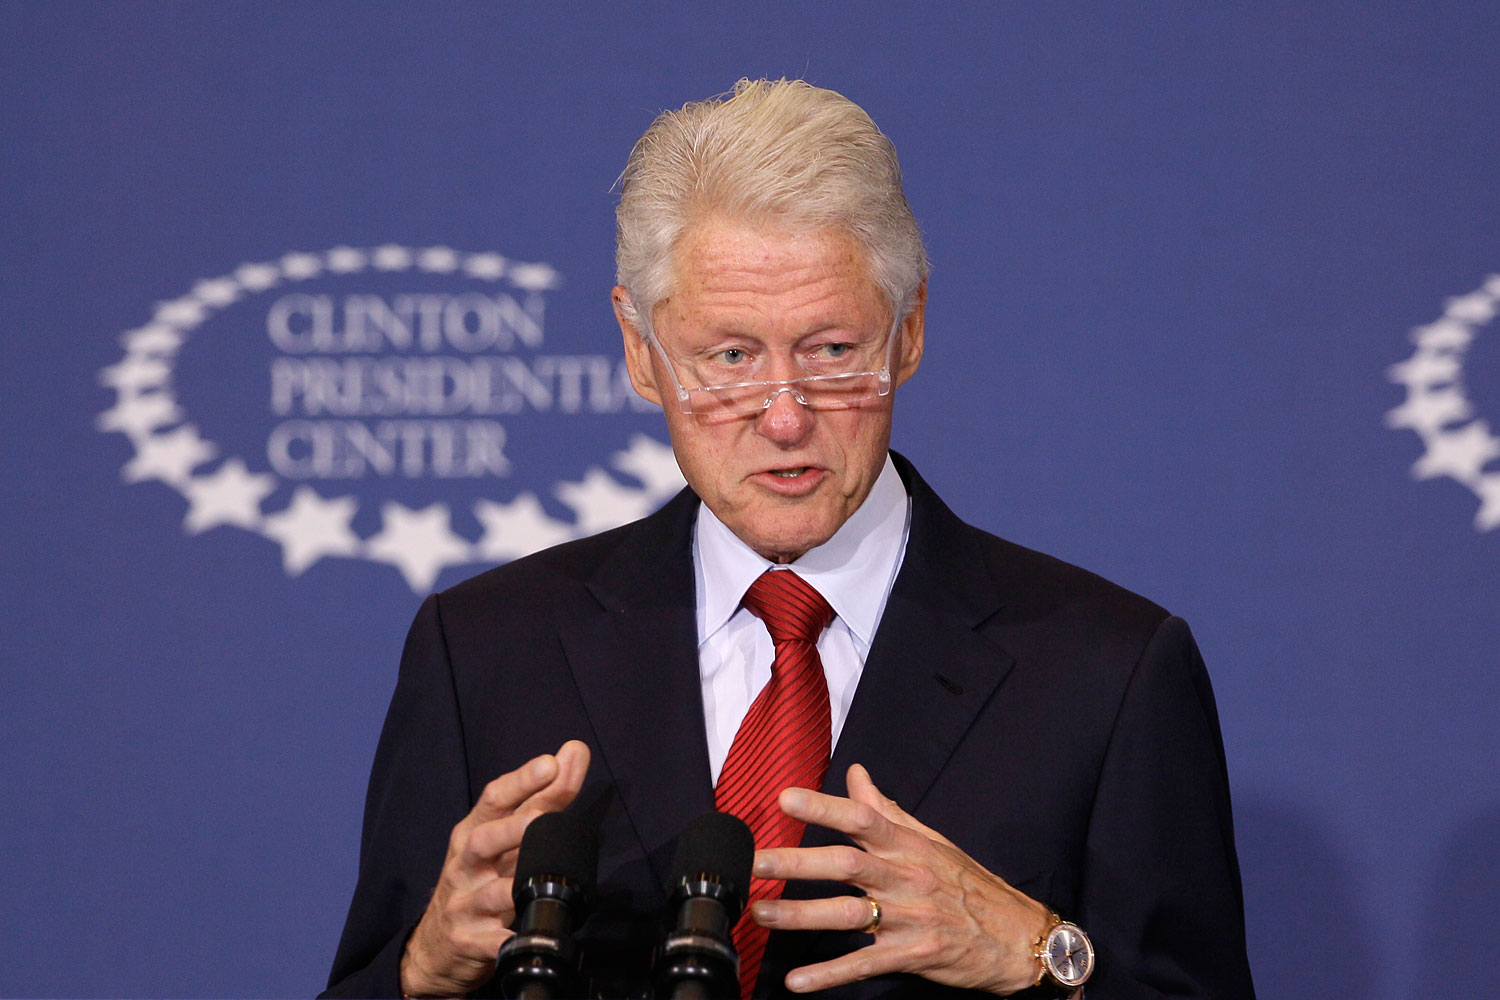 Former President Bill Clinton speaks about health care at the Clinton Presidential Center in Little Rock, Ark., Sept. 4, 2013.